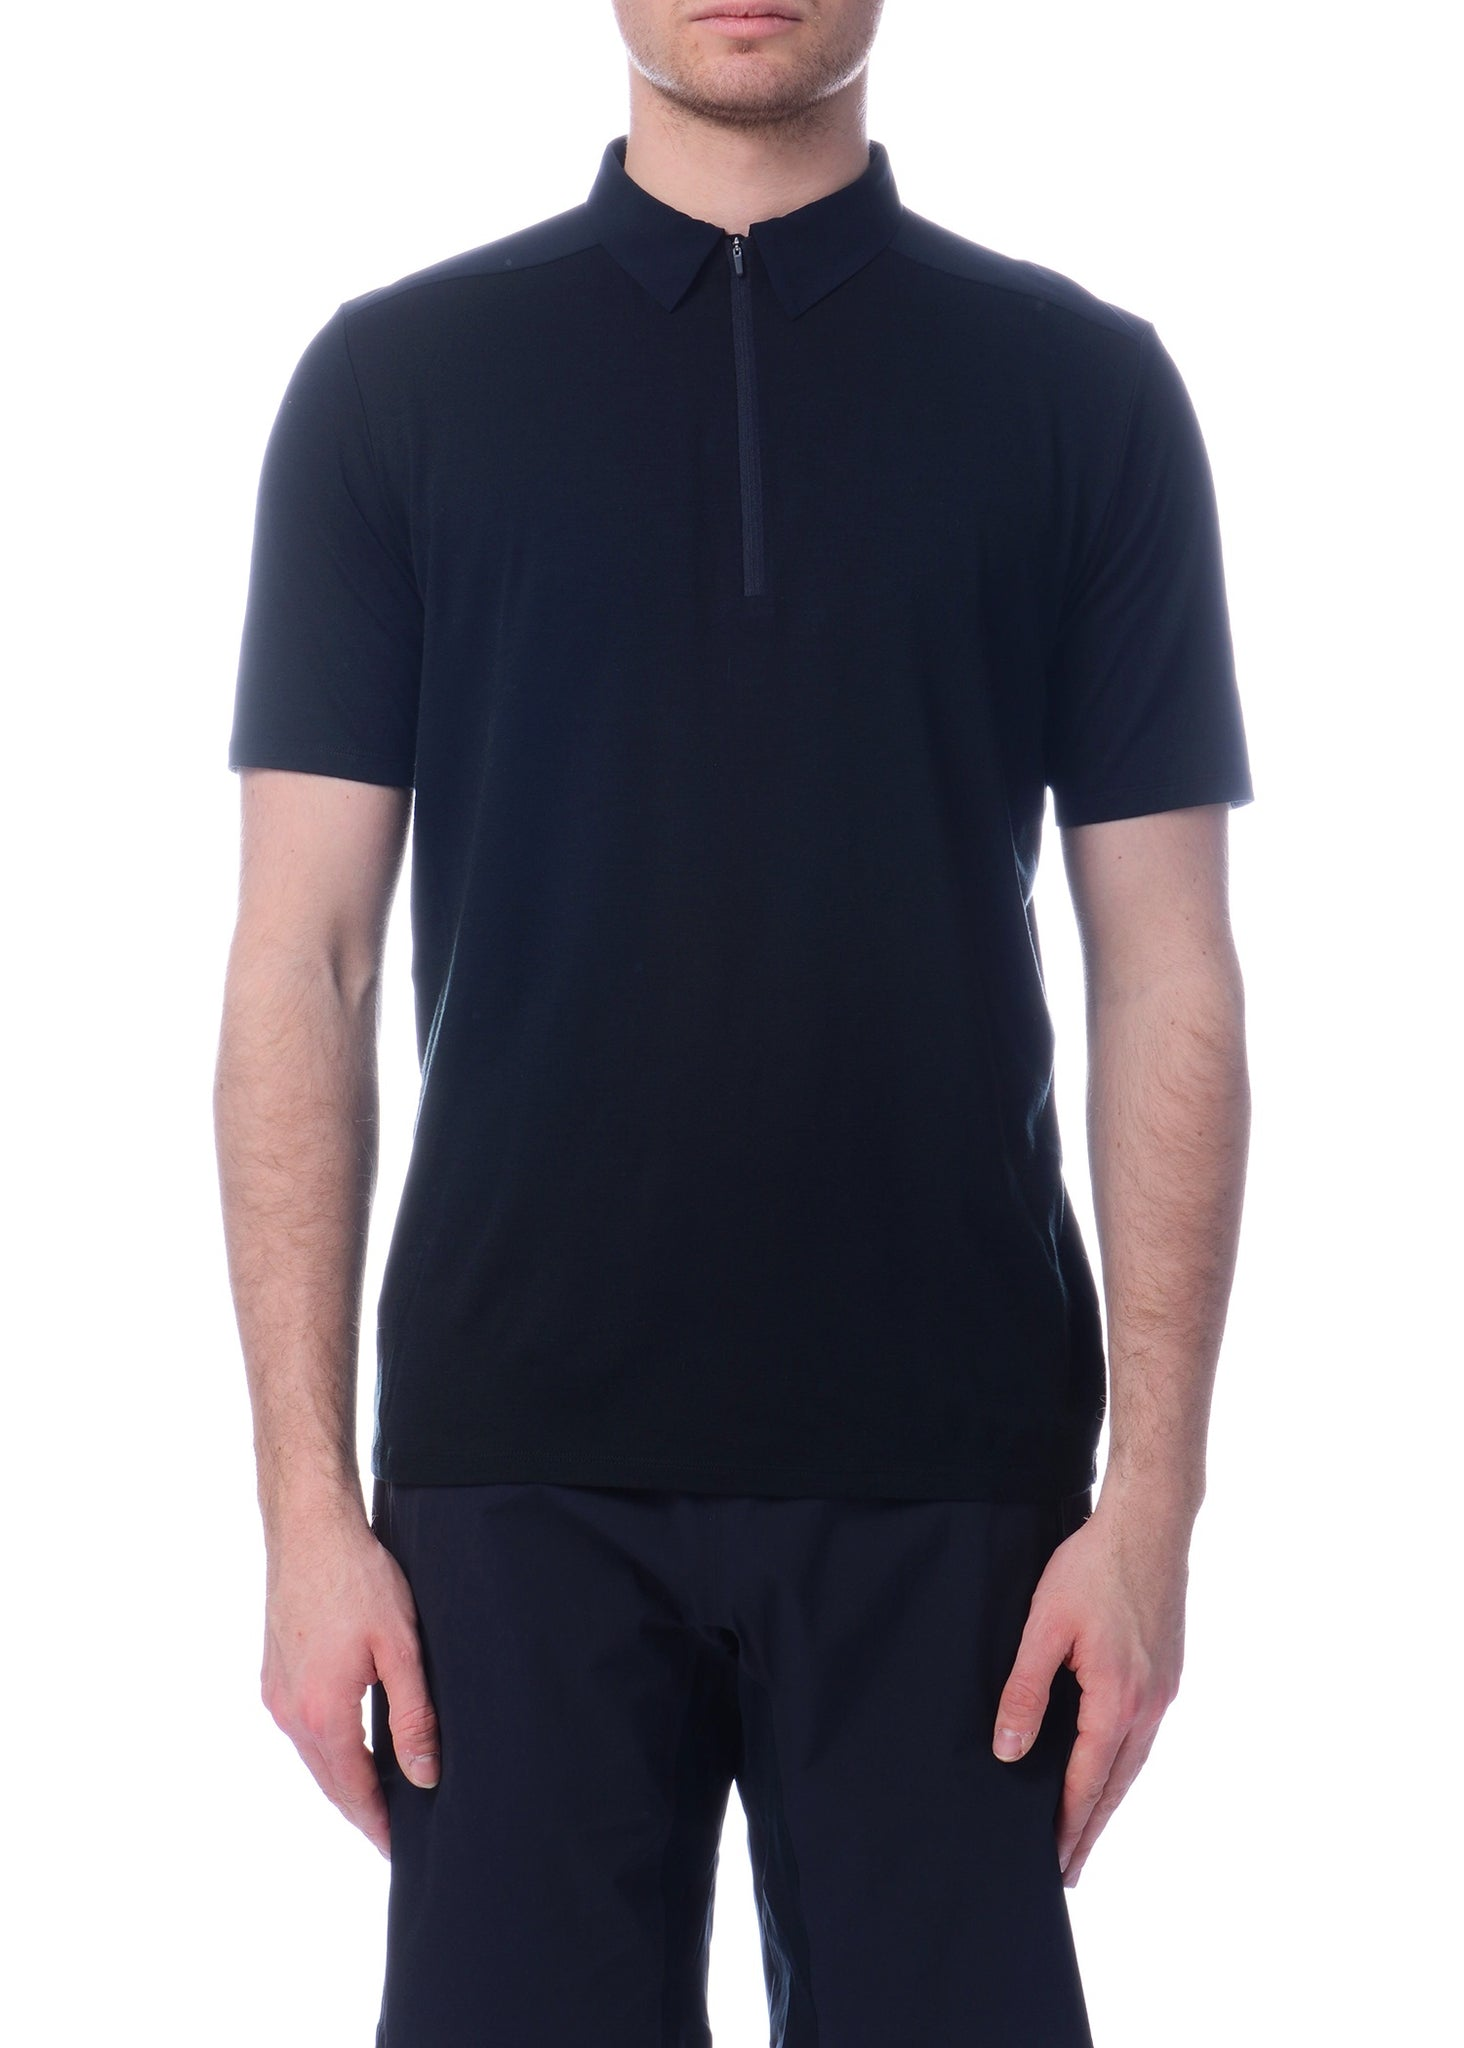 Polo FRAME Noir|Black FRAME Polo Shirt